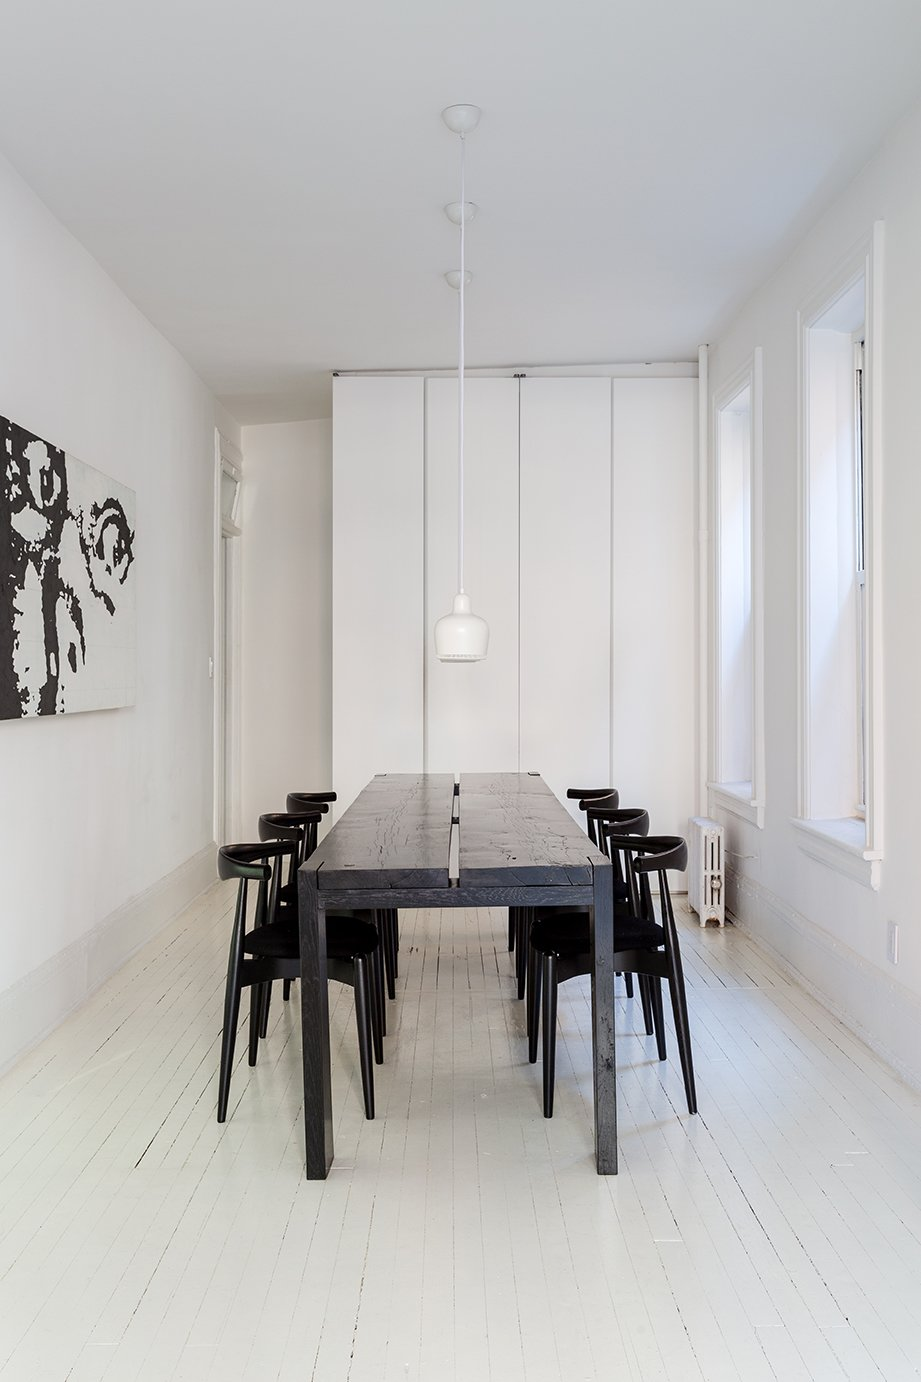 Dining Room, Chair, Table, Pendant Lighting, and Painted Wood Floor Elbow chairs by Hans J. Wegner  for Carl Hansen & Søn surround  a table of the couple's own design. By removing walls in this space, extra storage was possible. The trio of A330S pendants are by Alvar Aalto for Artek. The painting, The Look, is by Ed Parker. - Brooklyn, New York Dwell Magazine : July / August 2017  Photo 11 of 13 in A Pair of Designers Renovate Their Brooklyn Brownstone With a Bright Monochromatic Palette